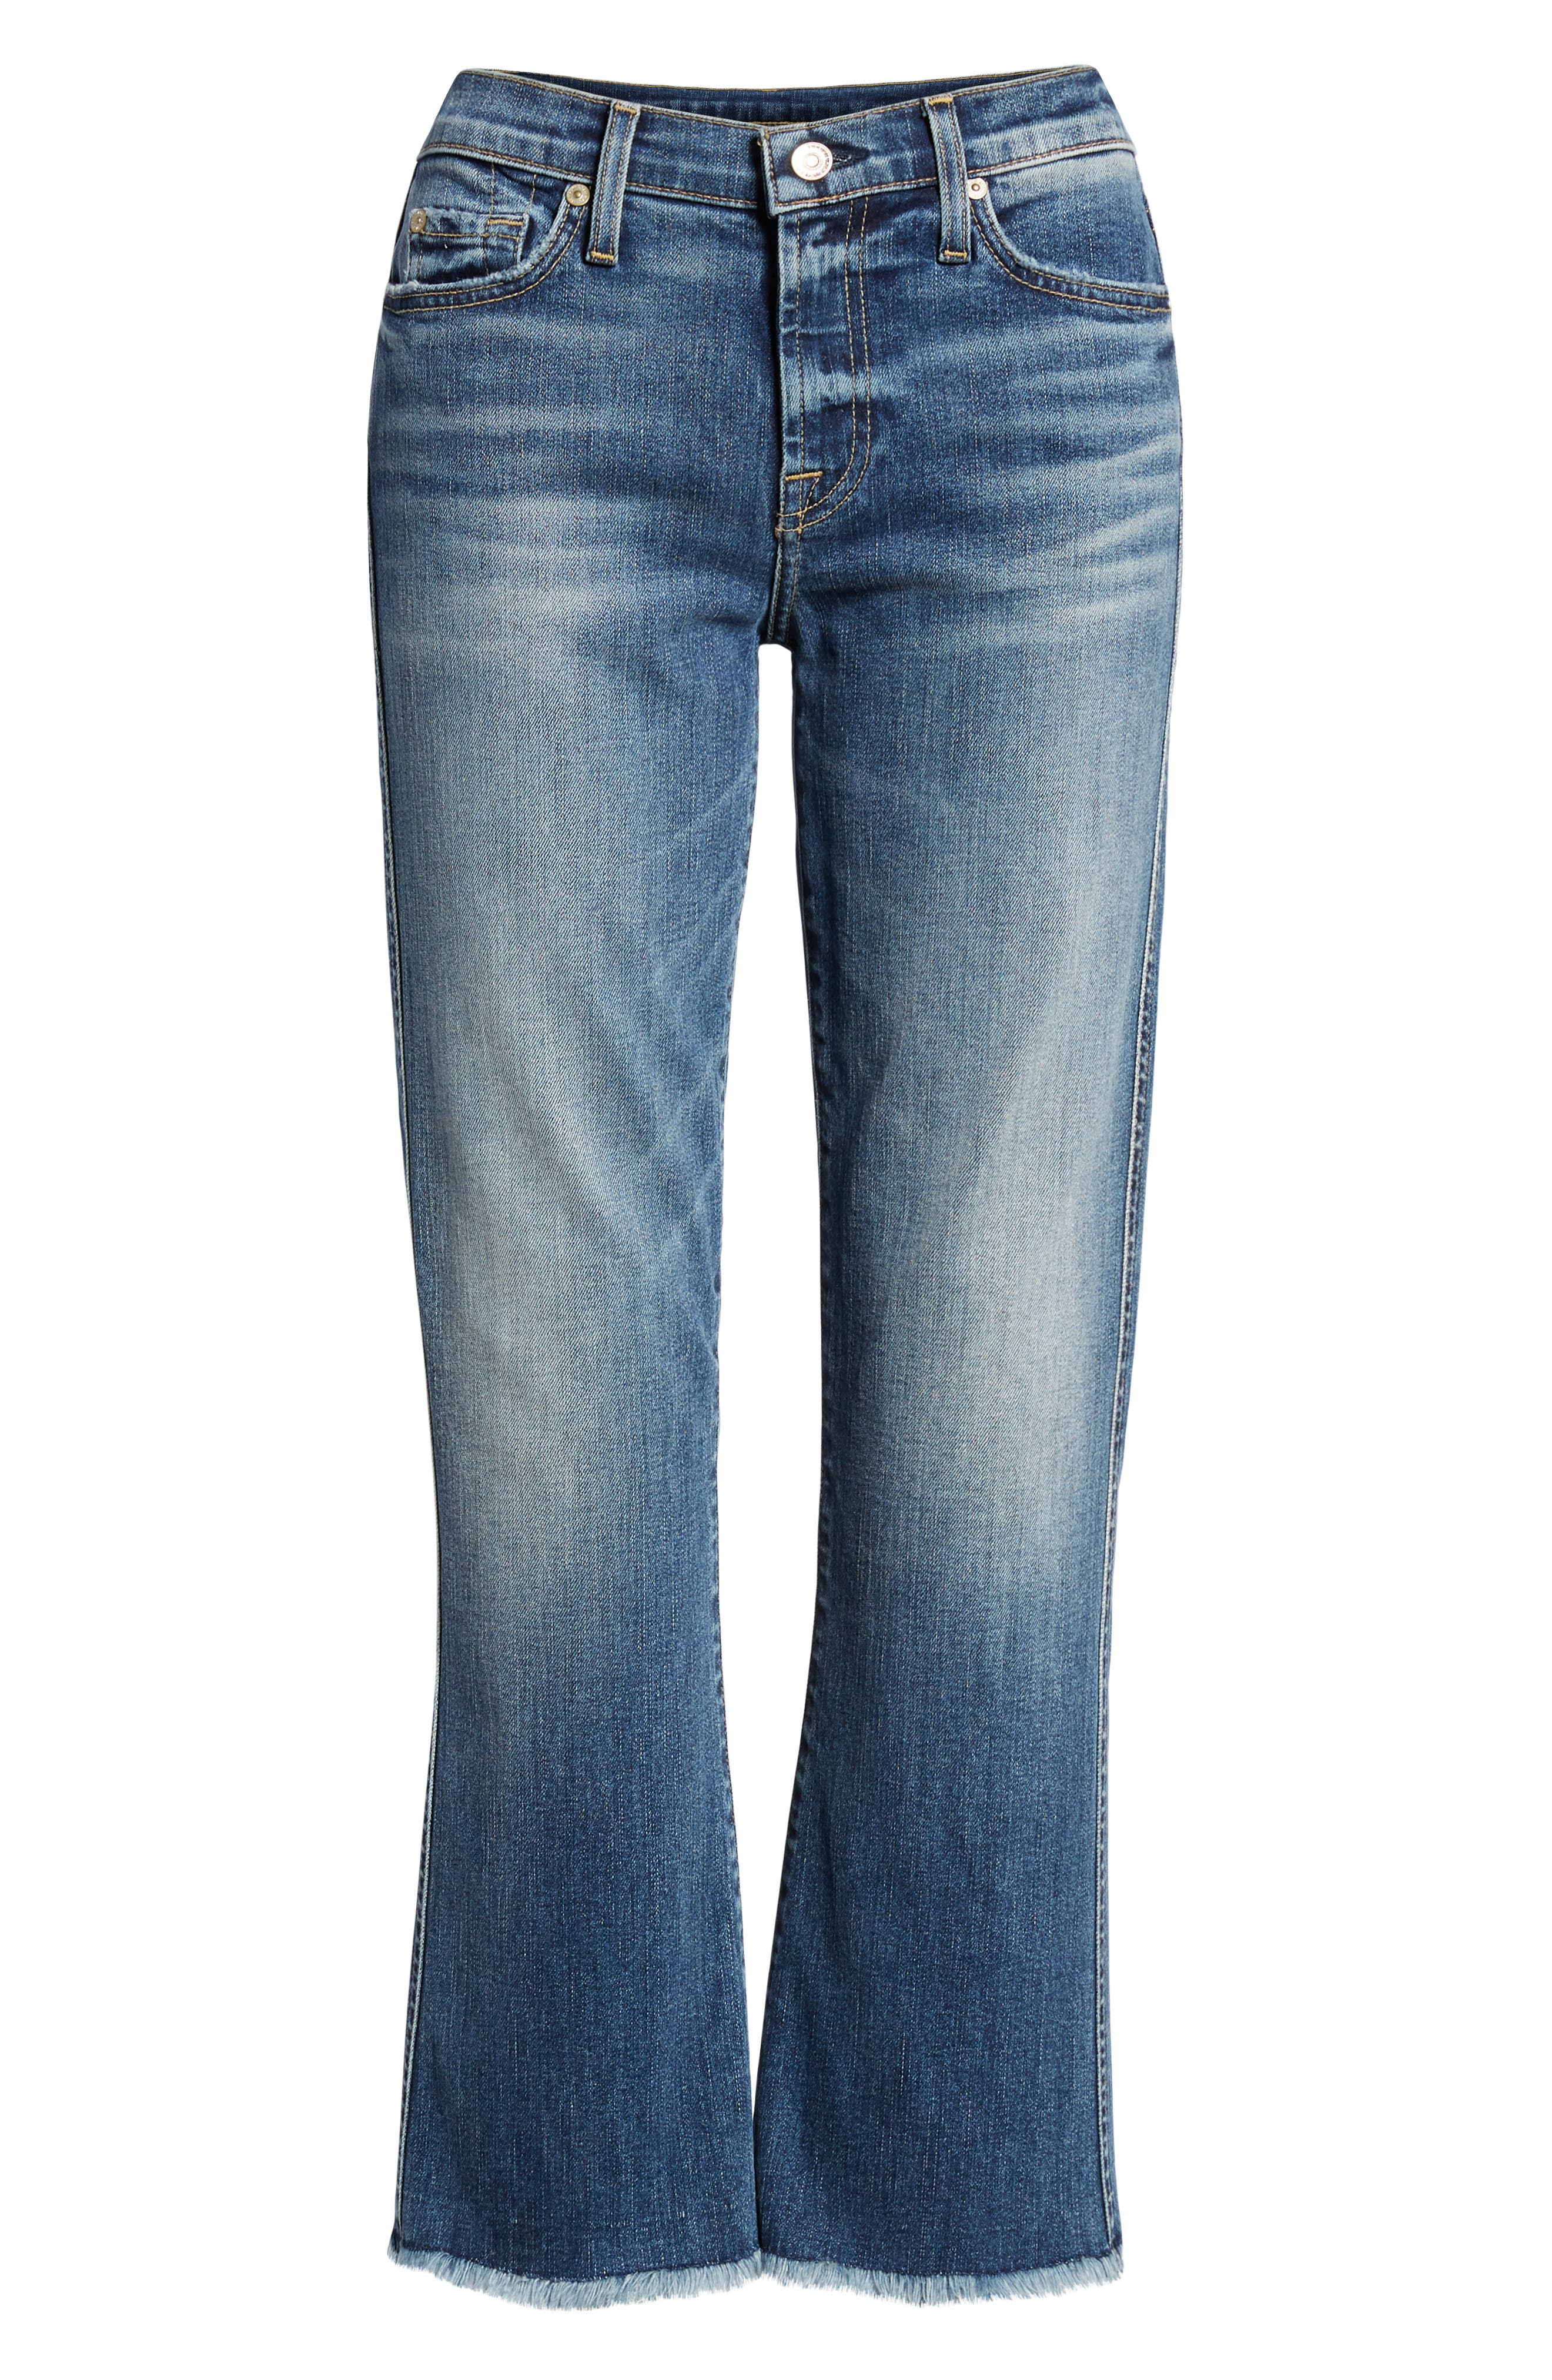 7 FOR ALL MANKIND<SUP>®</SUP>, High Waist Fray Crop Bootcut Jeans, Alternate thumbnail 7, color, 400